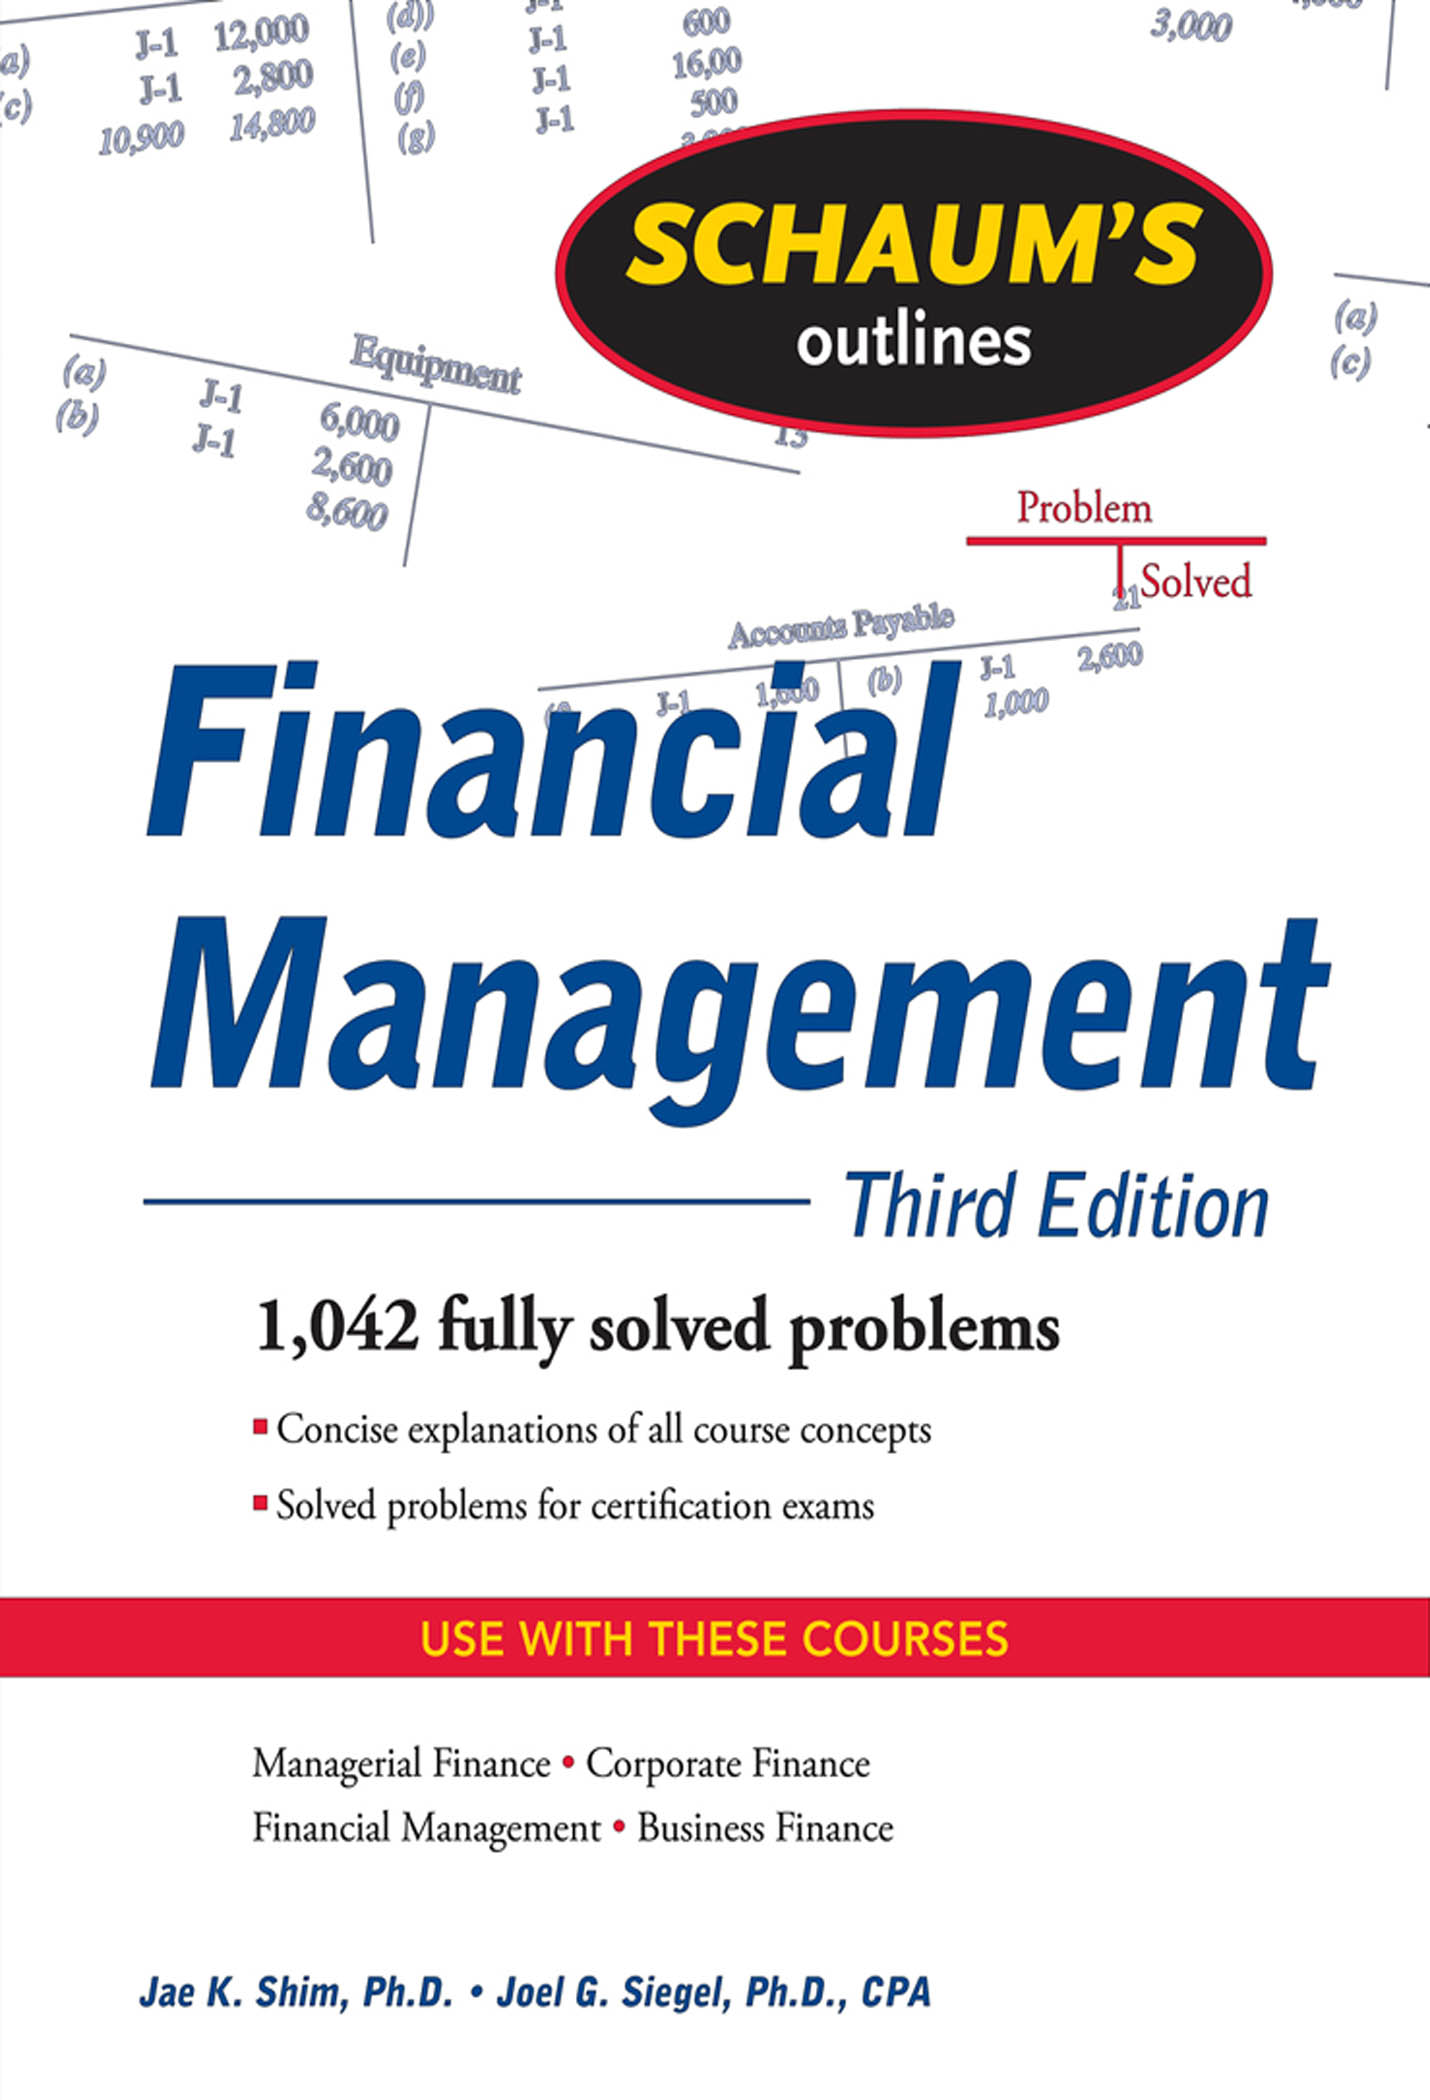 Download Ebook Schaum's Outline of Financial Management, Third Edition (3rd ed.) by Jae K. Shim Pdf